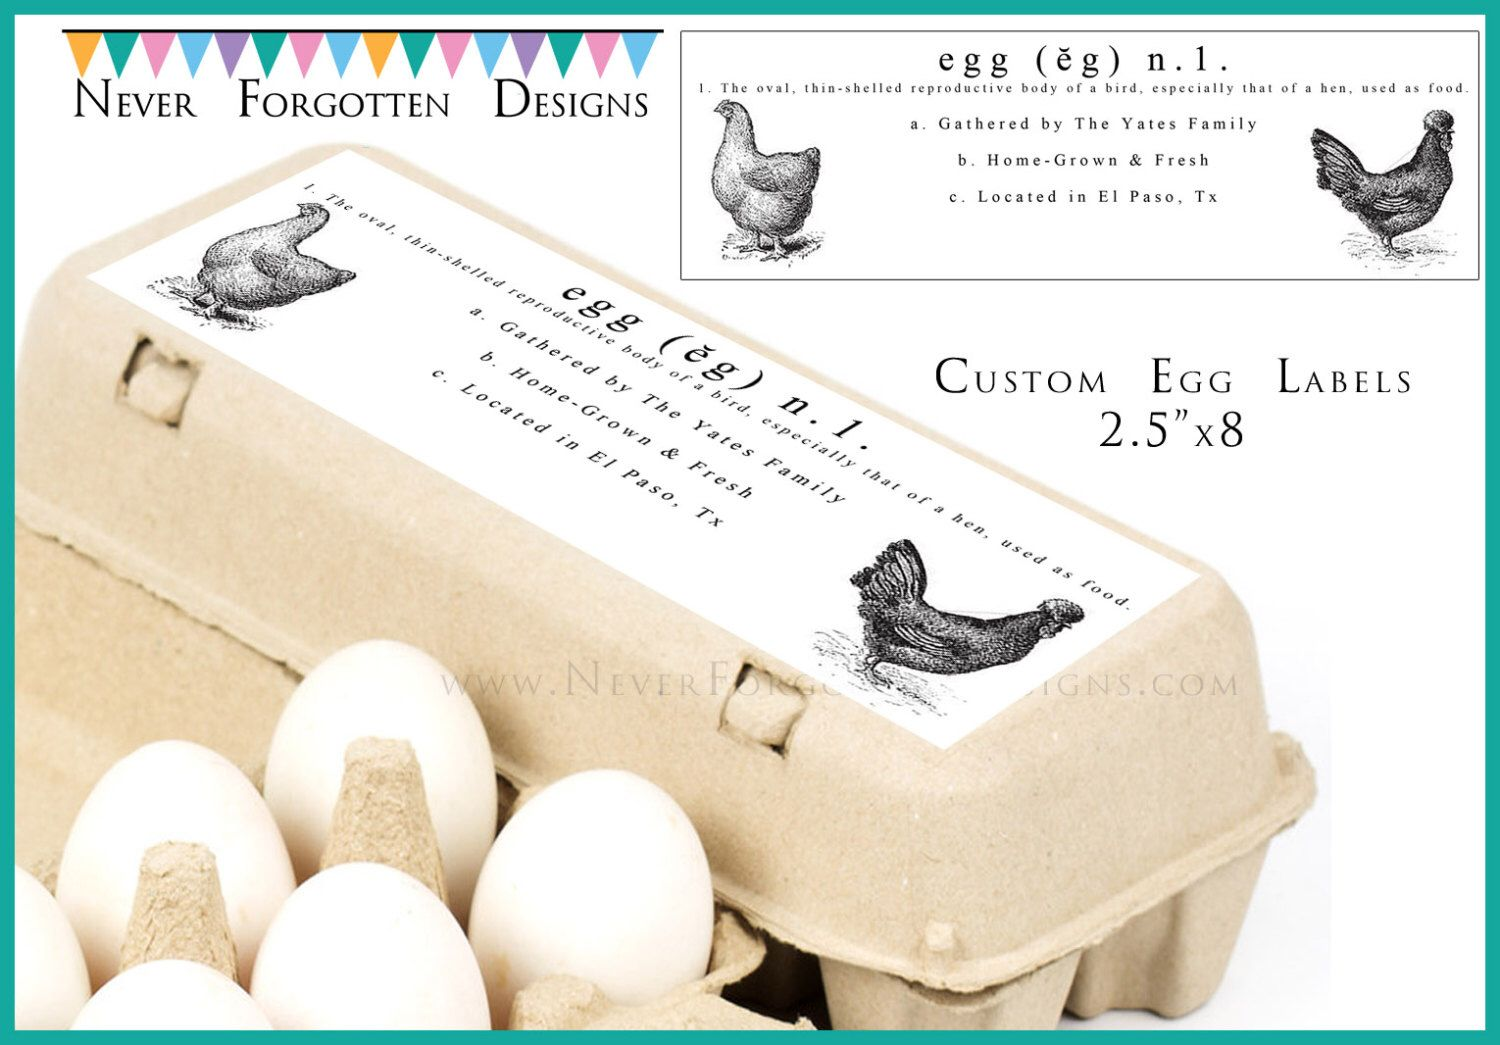 2 5 X 8 Egg Carton Labels Customized Label Perfect For